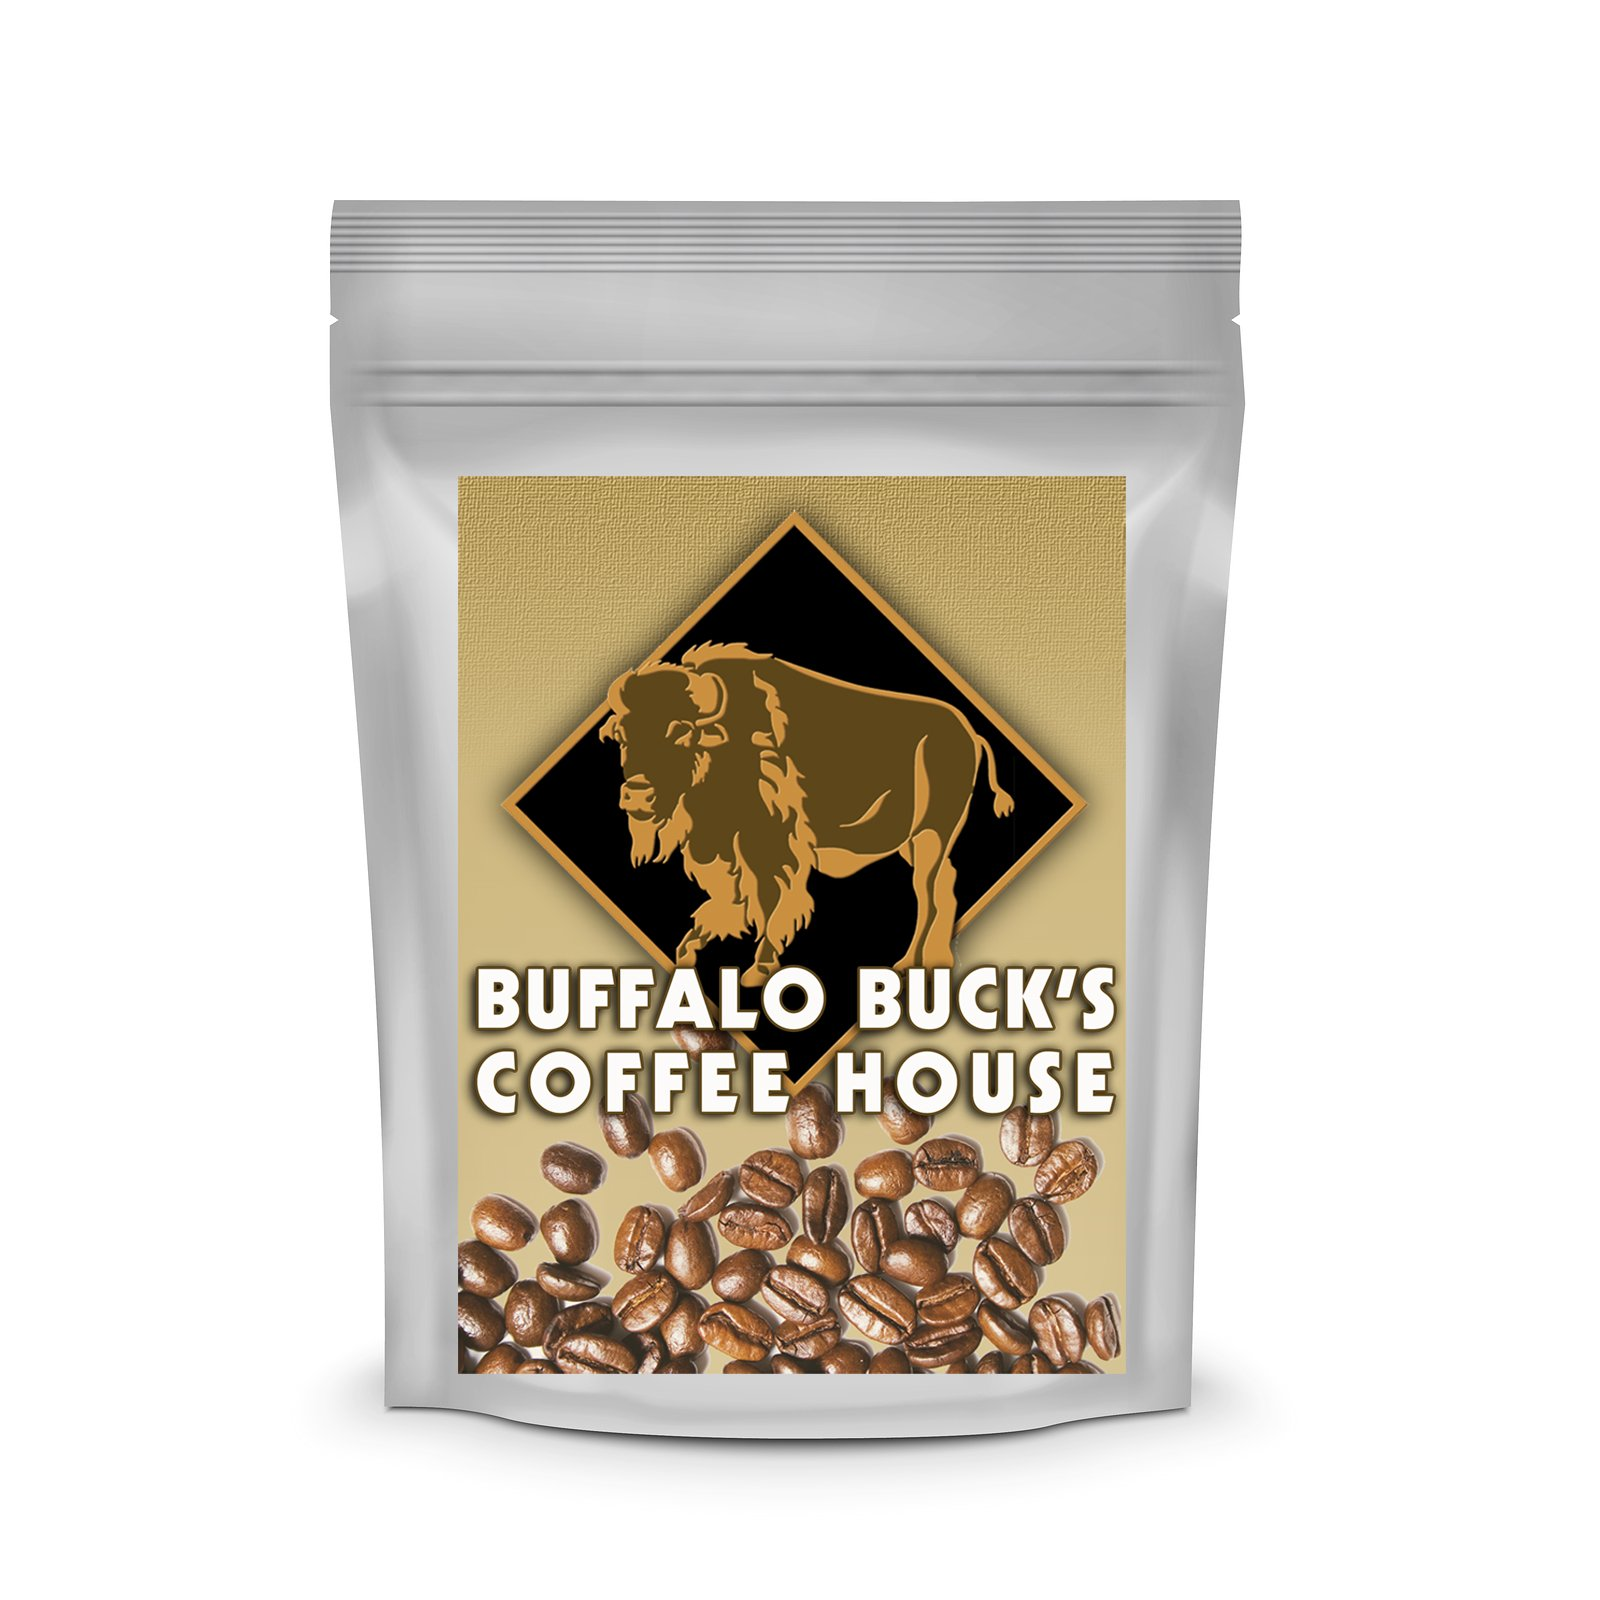 Rooibos Red Tea Loose Leaf Flavored with Sweet Caramel - 5 Pound Bag by Buffalo Buck's Coffee